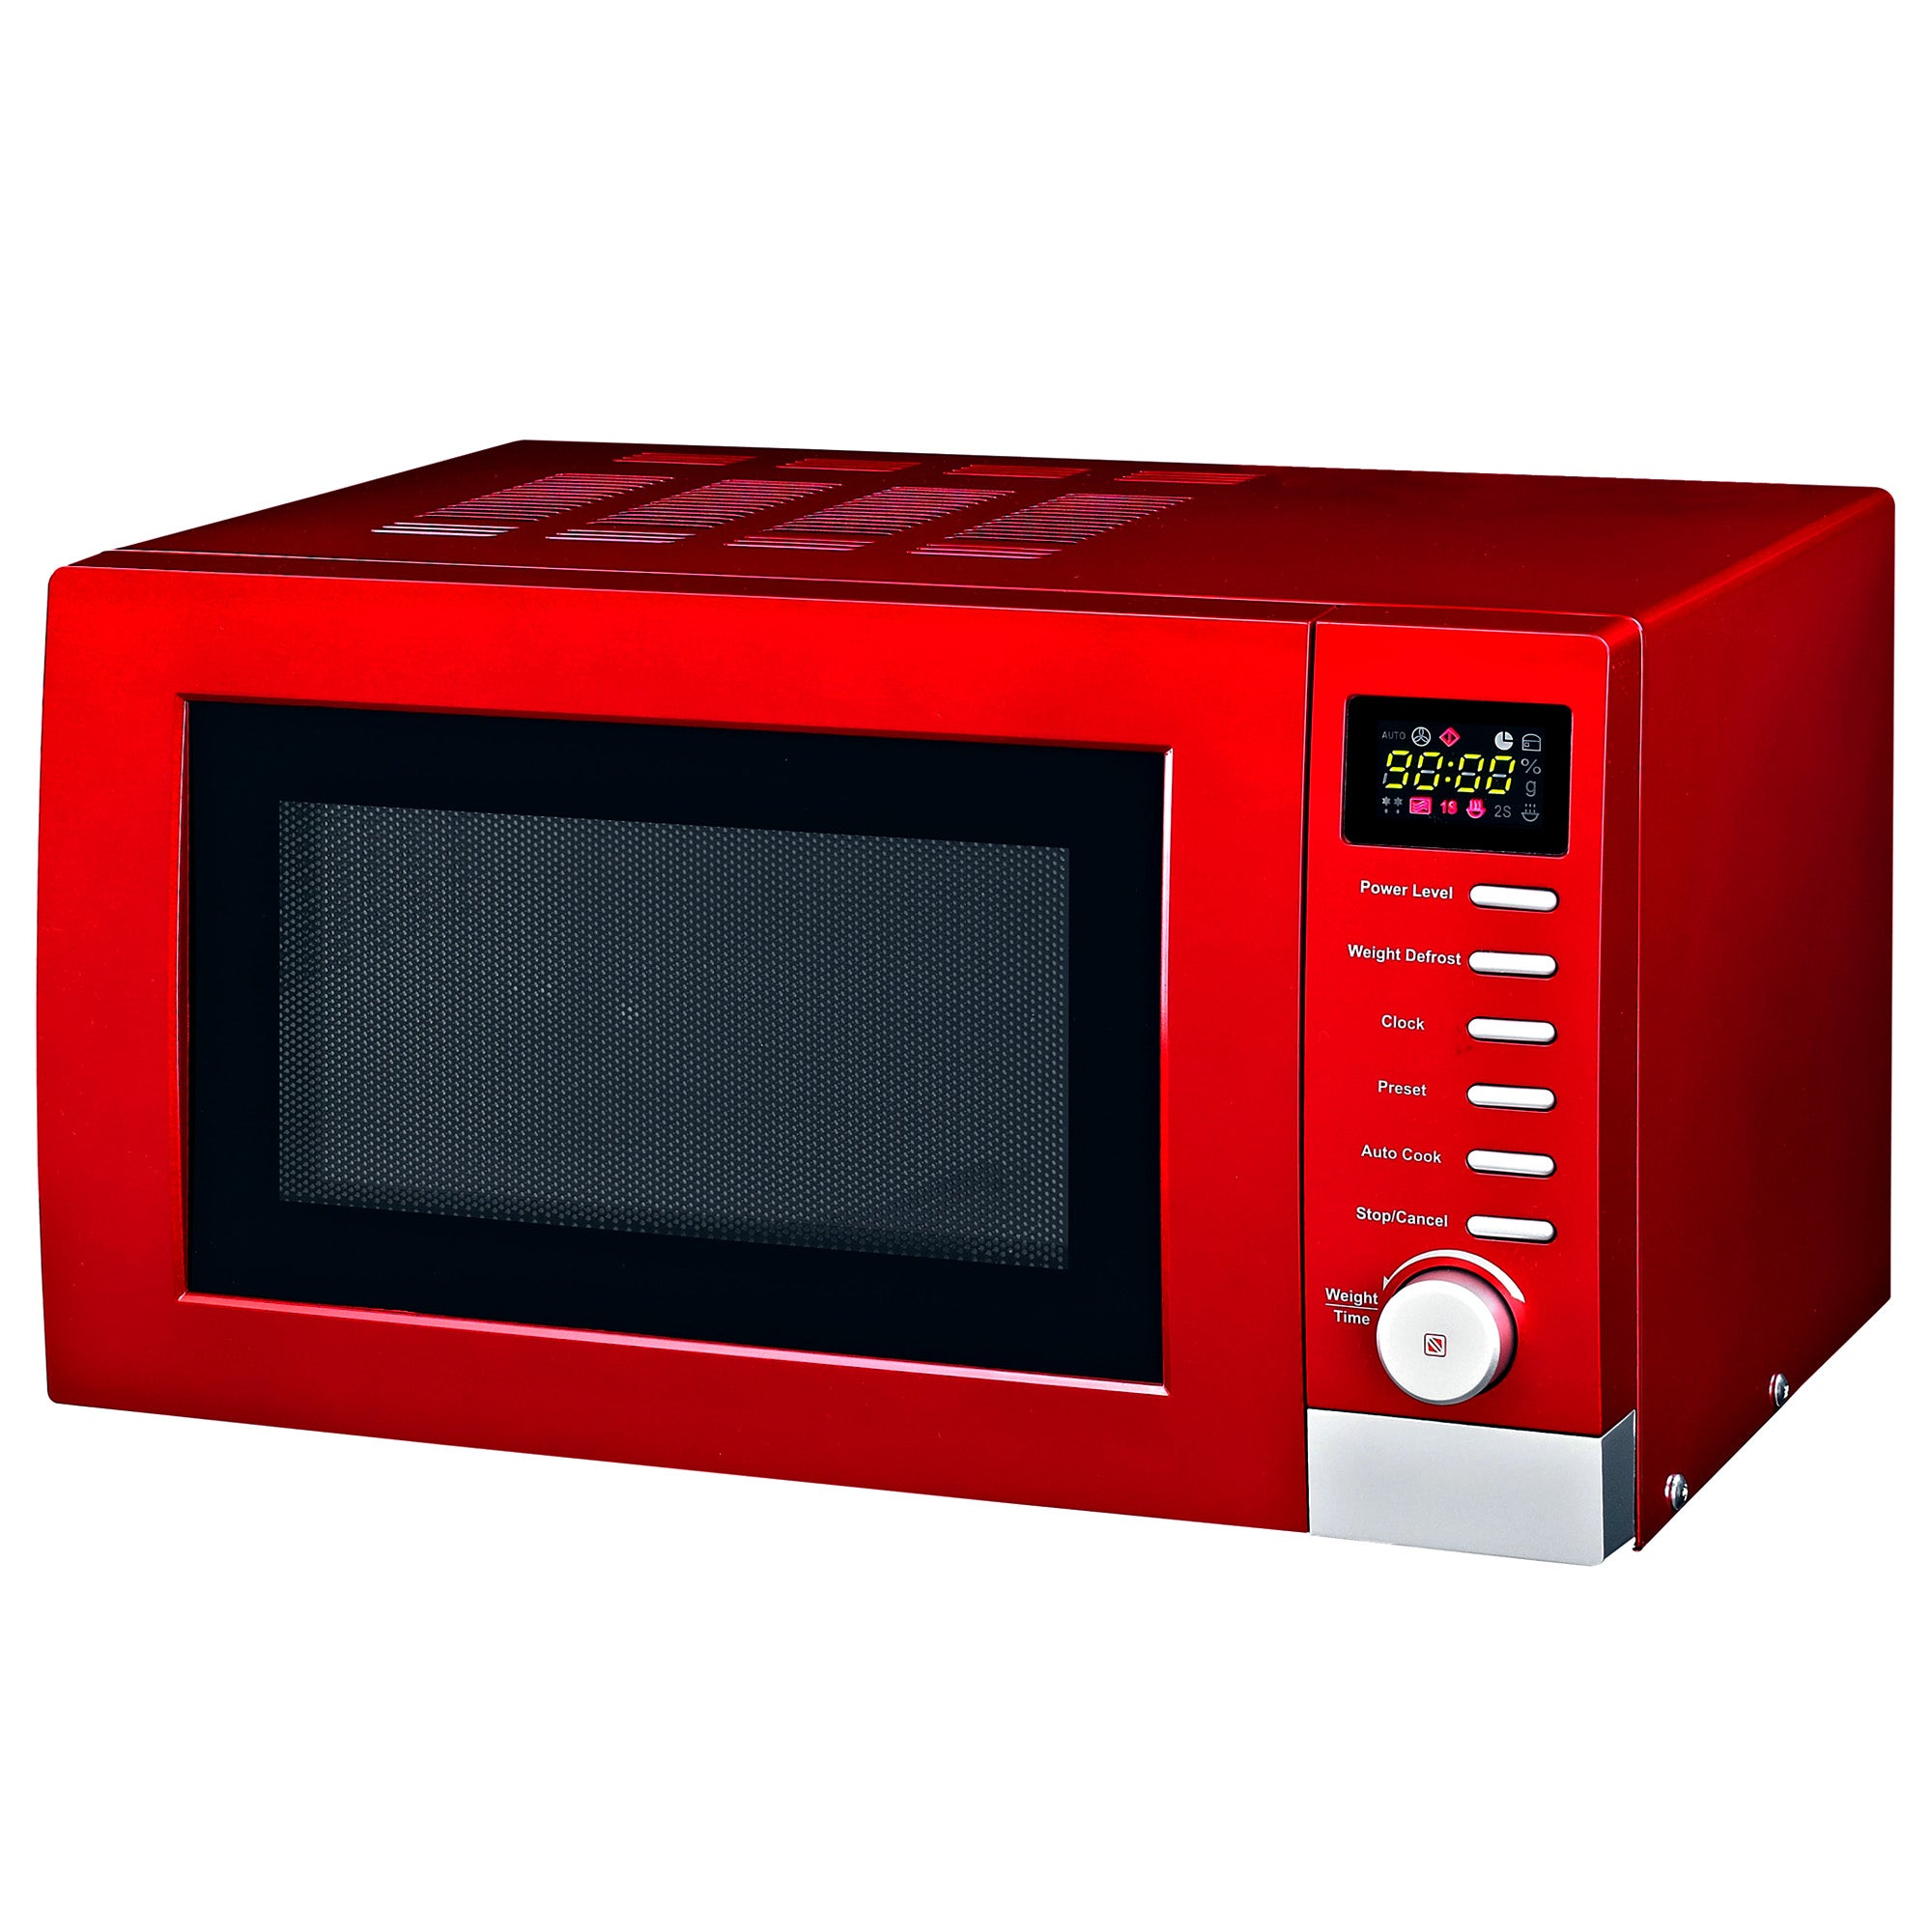 Red Spectrum Collection Digital Microwave